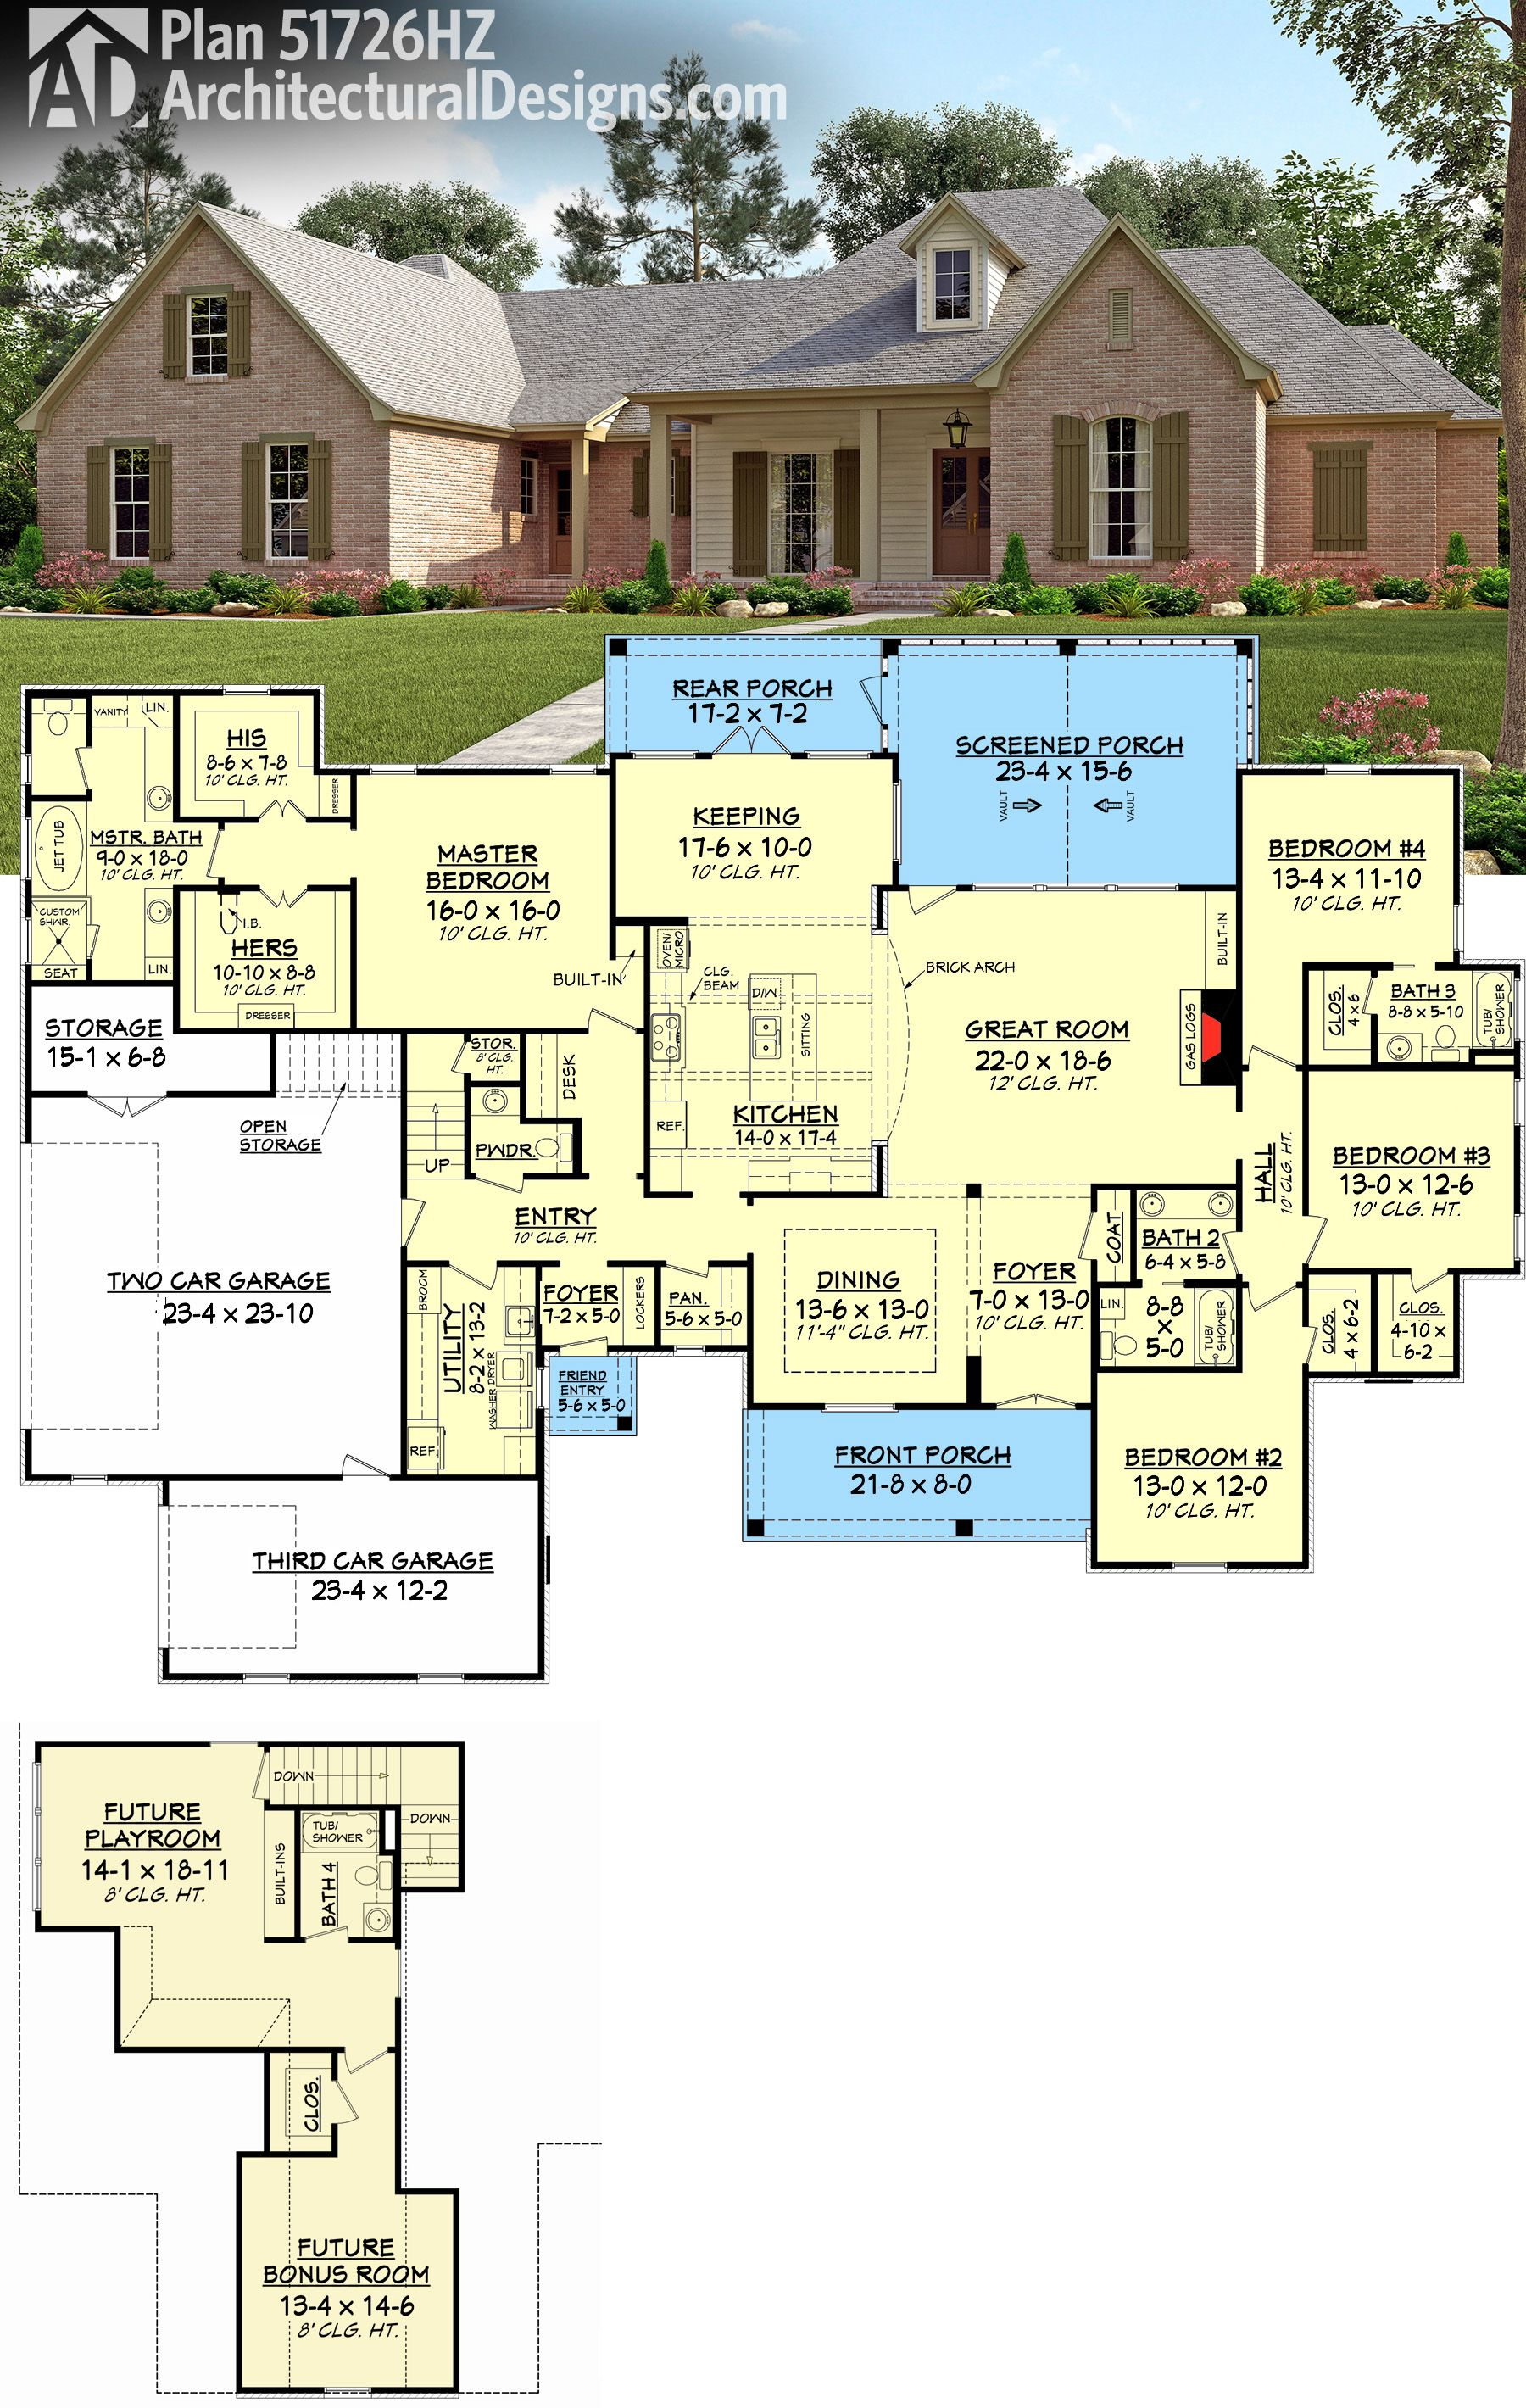 Plan 51726hz 4 bed french country with upstairs expansion for House plans with bonus room